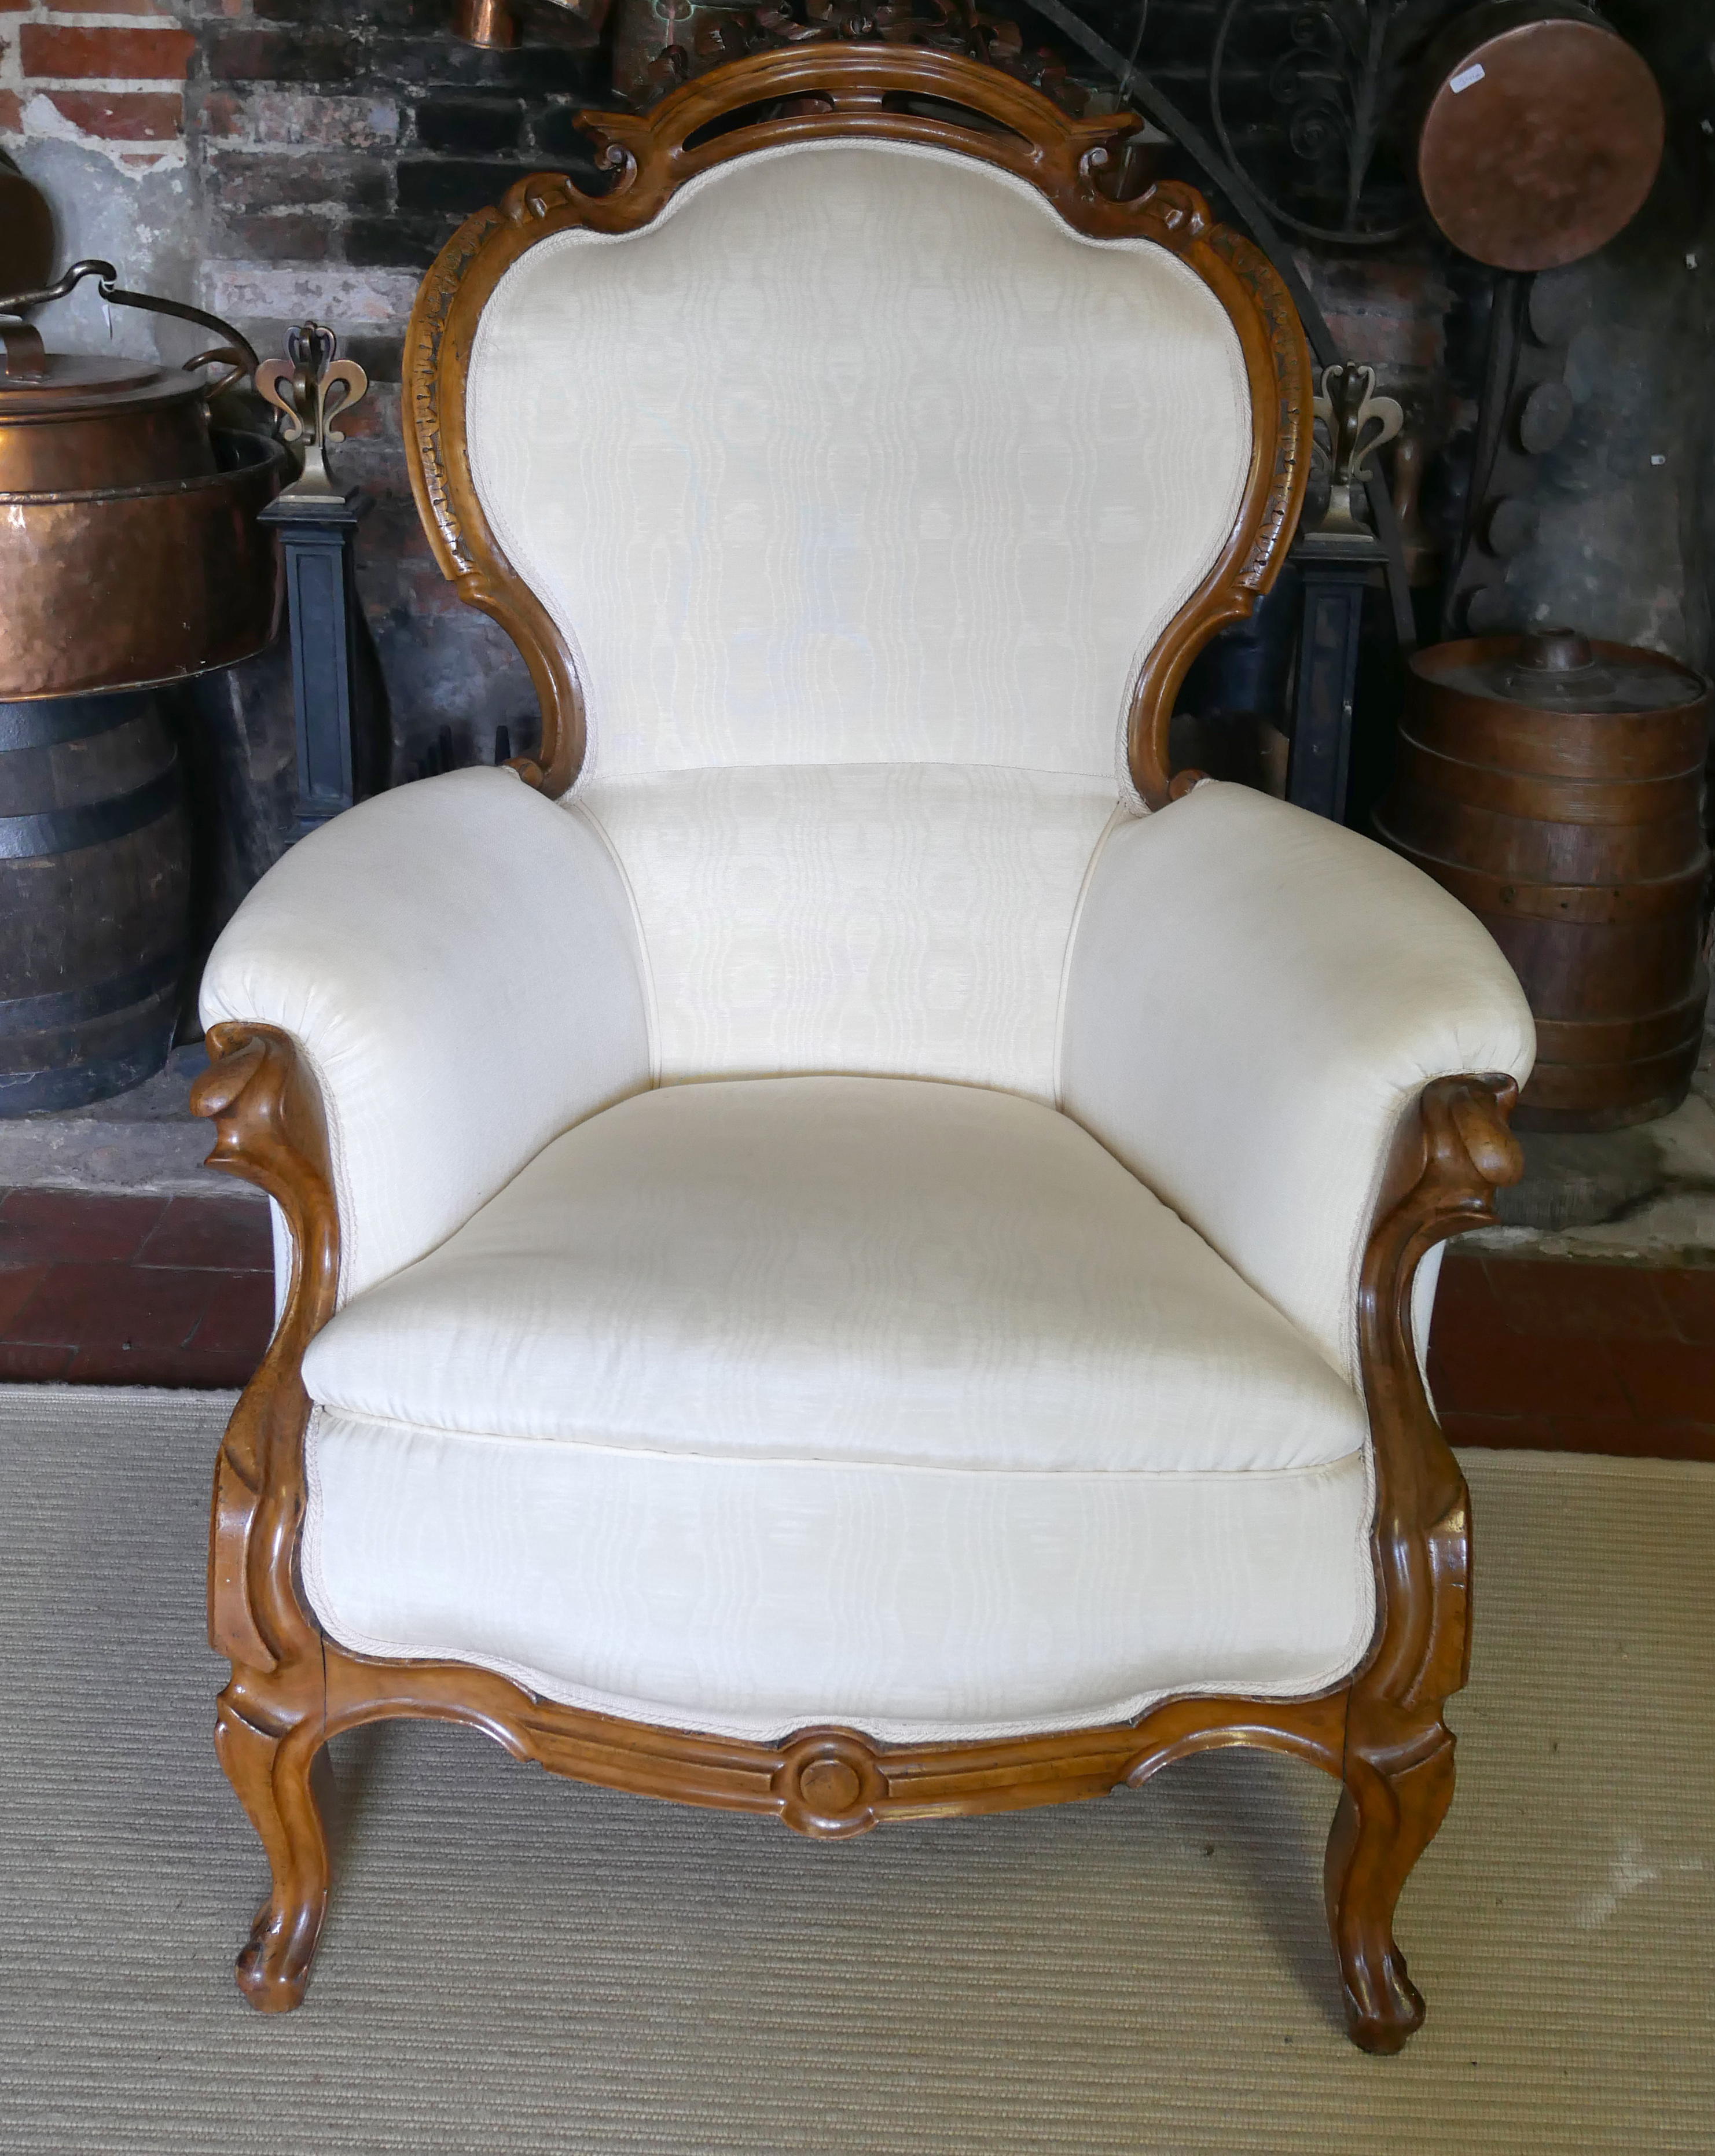 A 19TH CENTURY FRENCH ARMCHAIR Upholstered in a cream water silk, the mahogany frame with carved and - Image 3 of 3